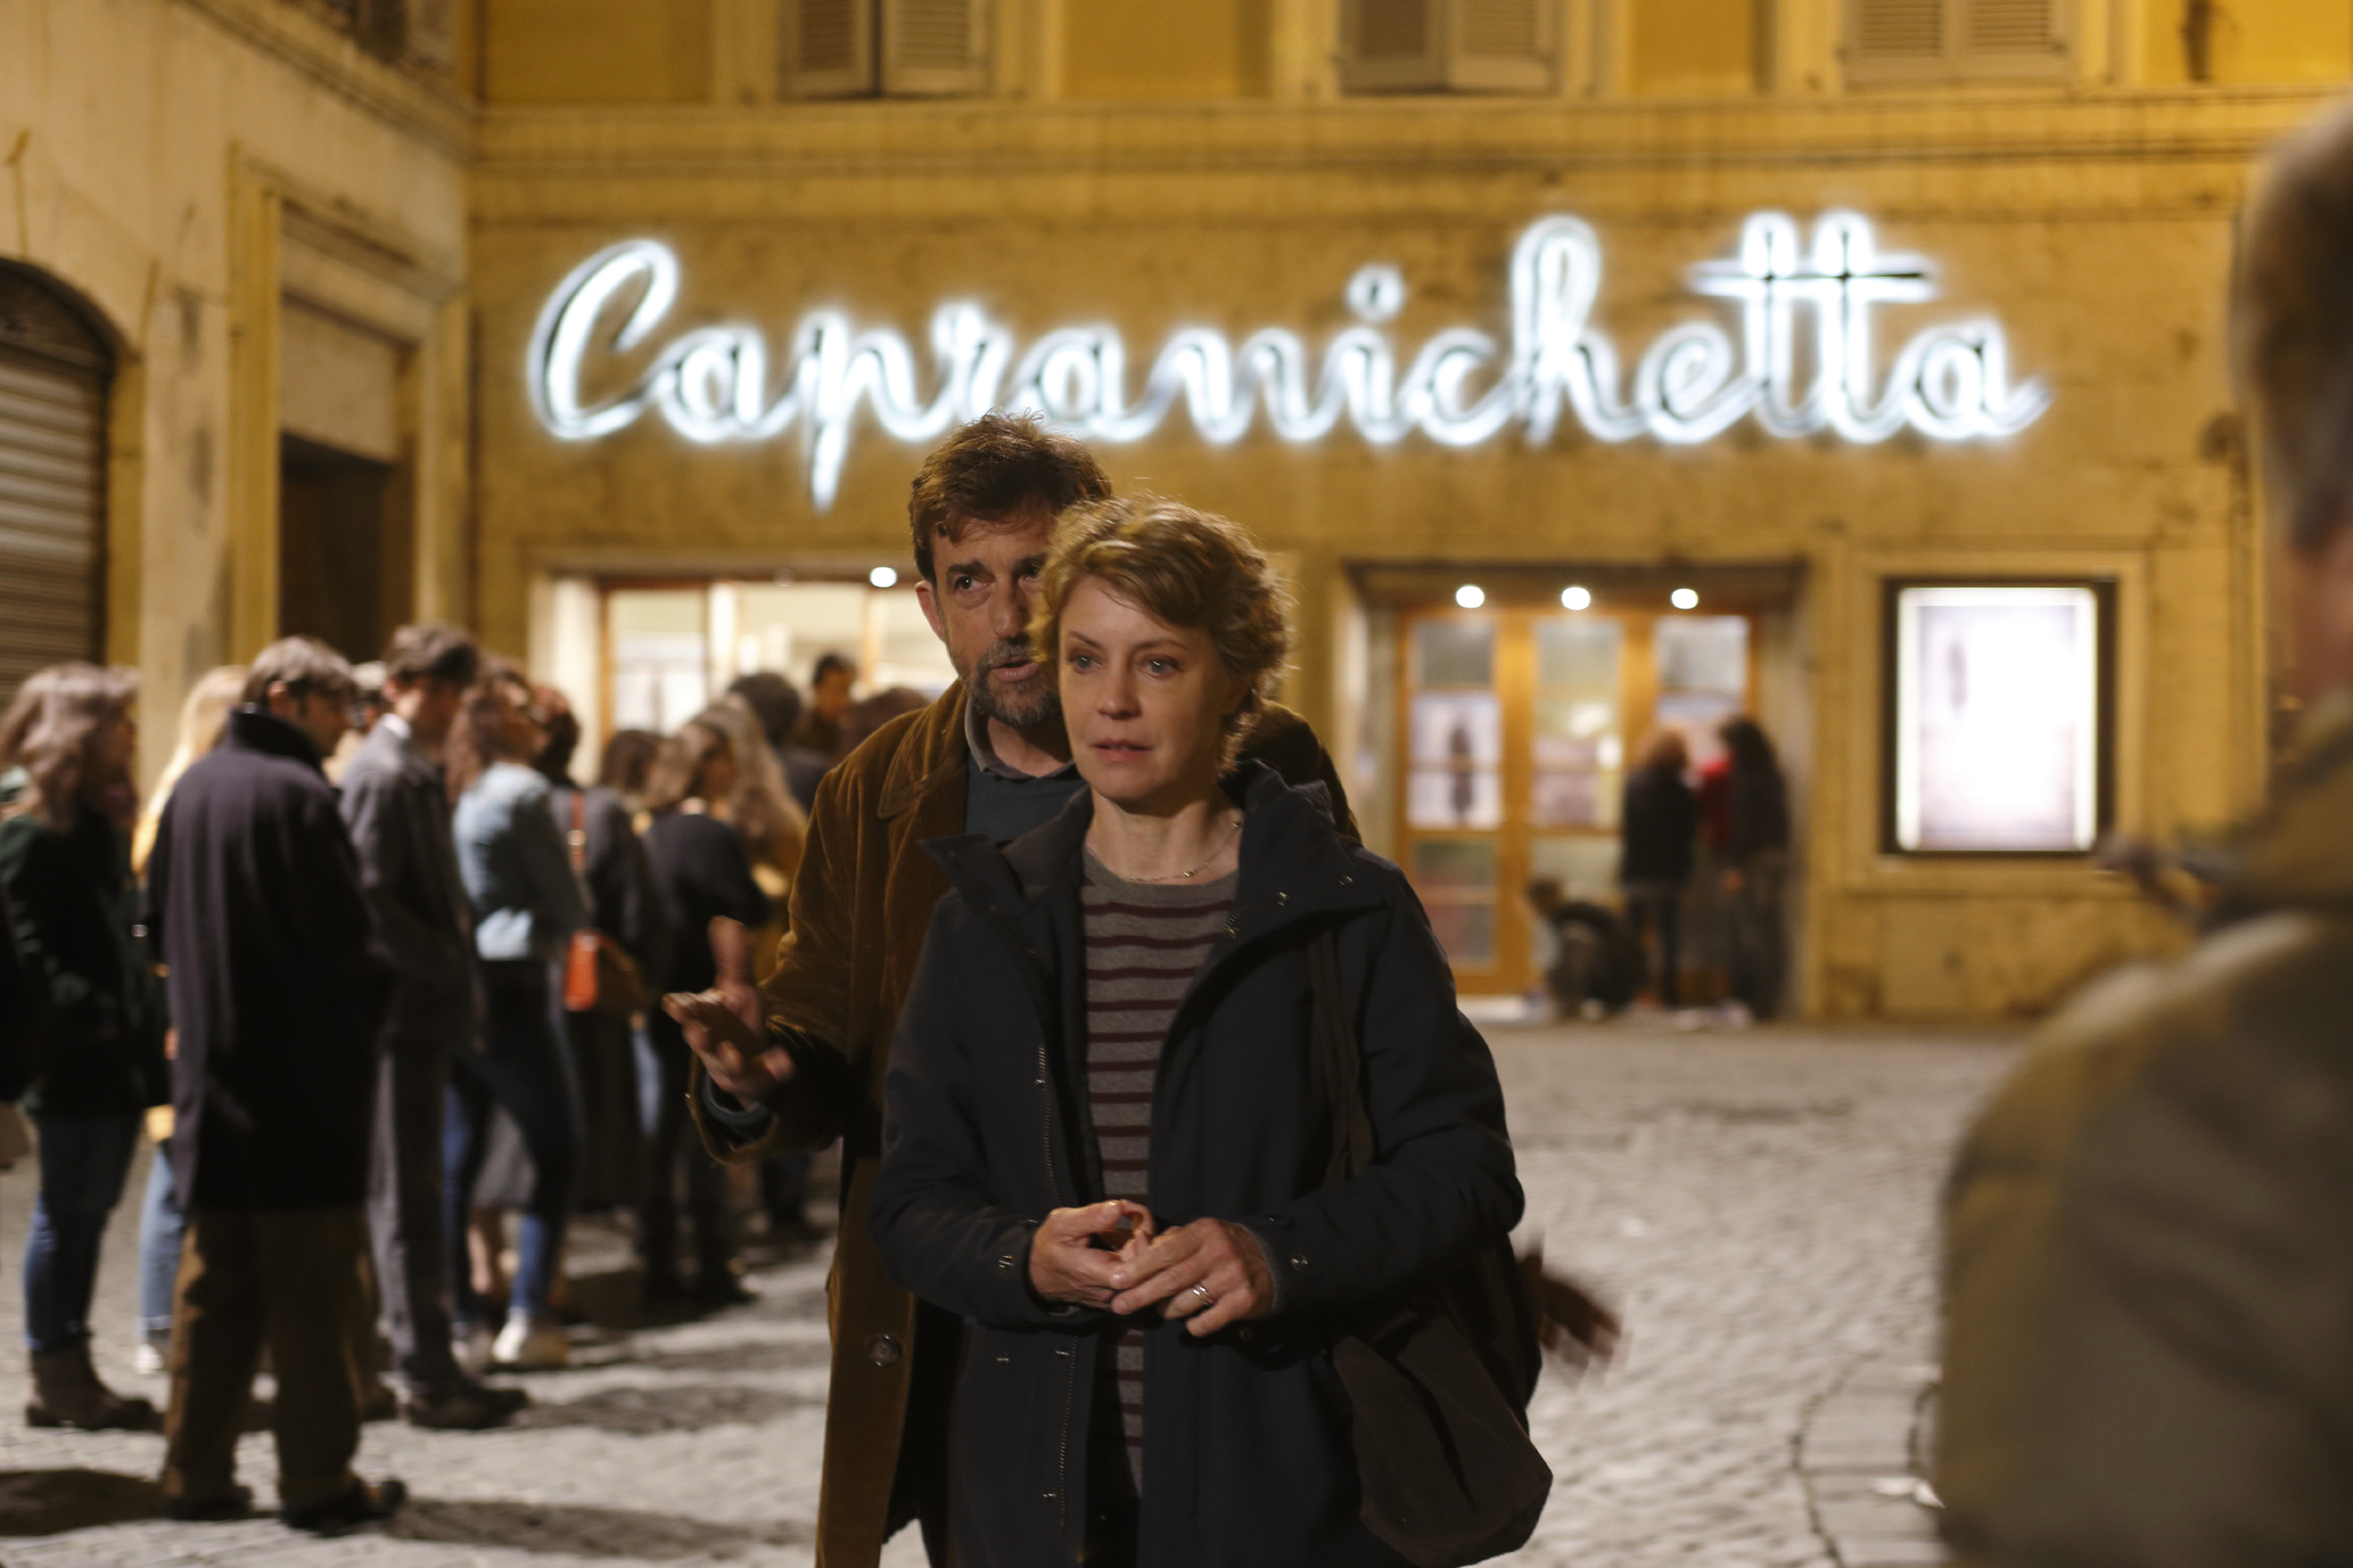 Nanni Moretti and Margherita Buy outside the Capranichetta Cinema in Rome.